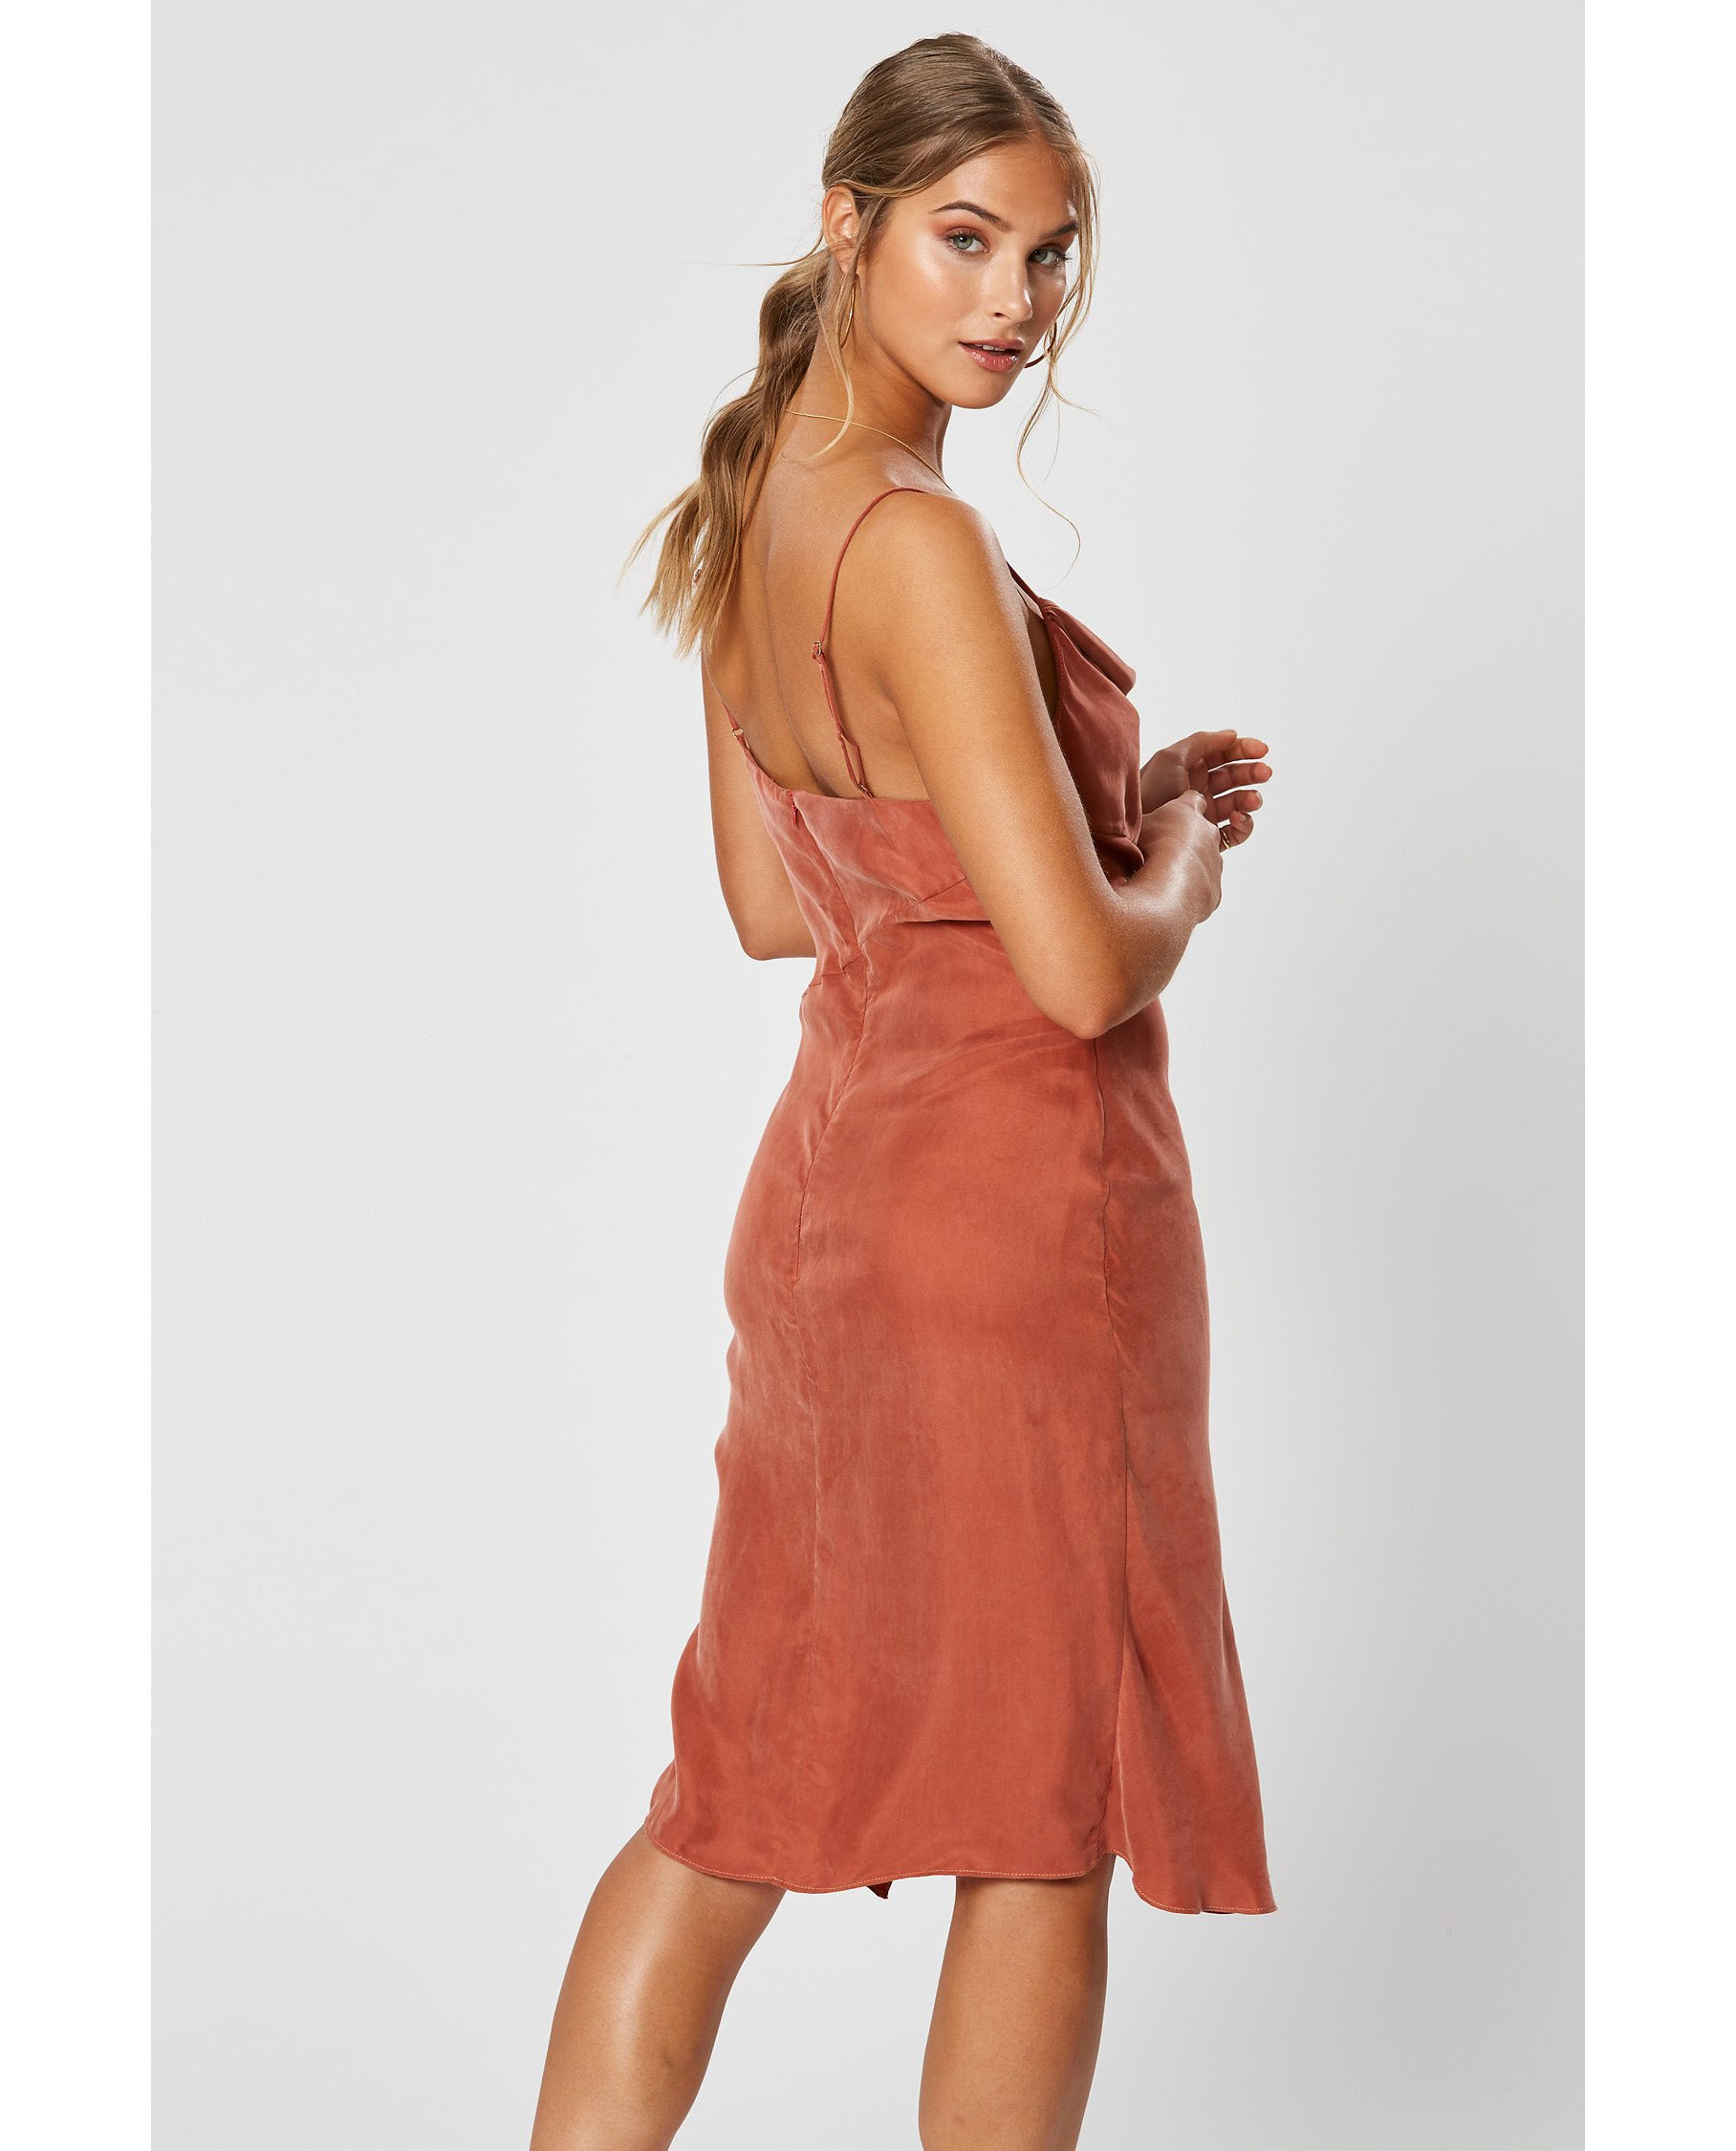 WINONA COPPER SIMONE DRESS